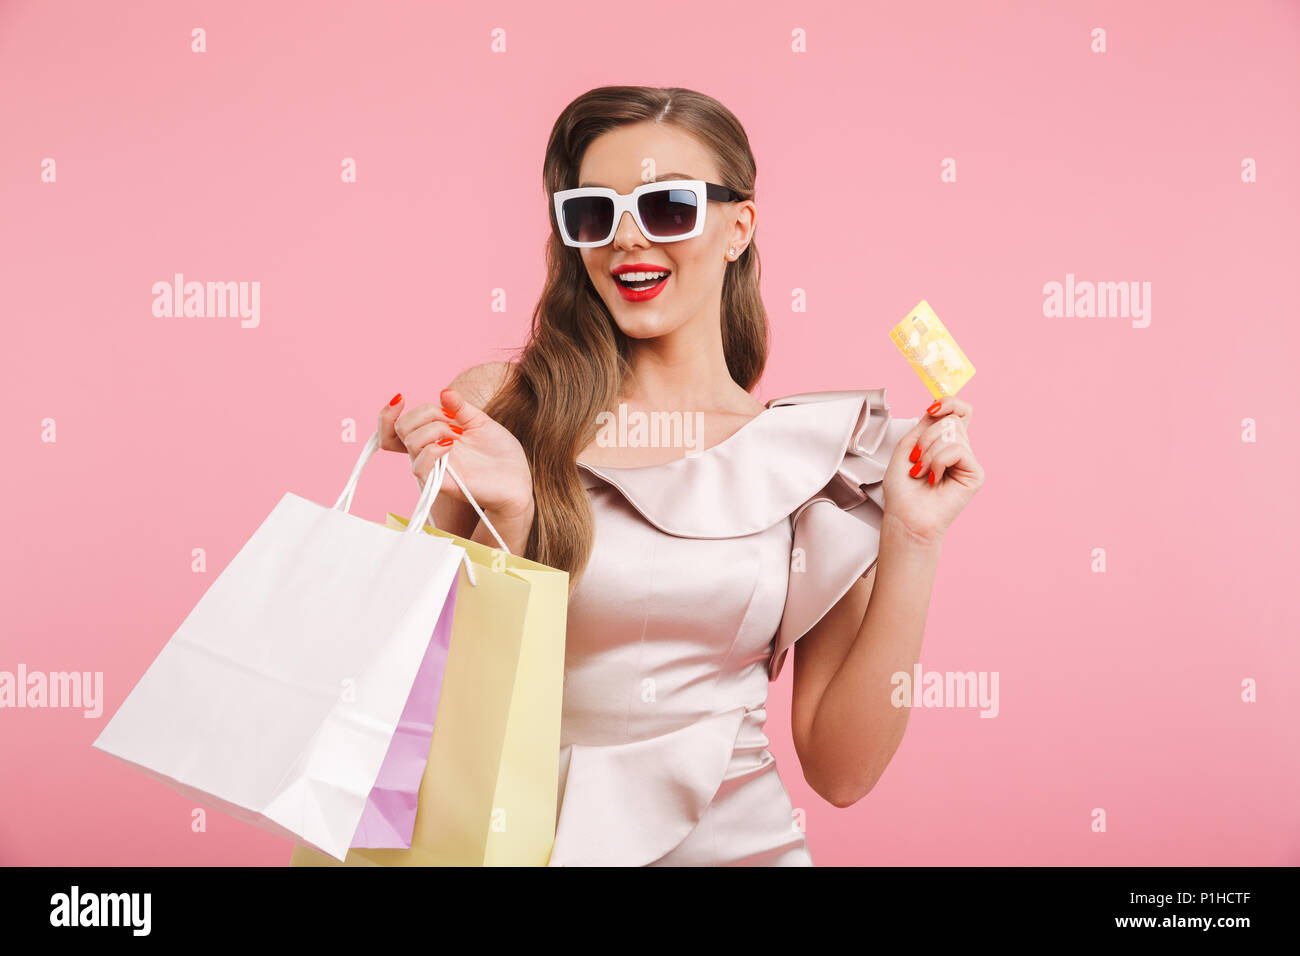 a008cebf78d65 Photo of stylish woman in dress and sunglasses smiling while holding  different shopping bags and credit card in hands isolated over pink  background